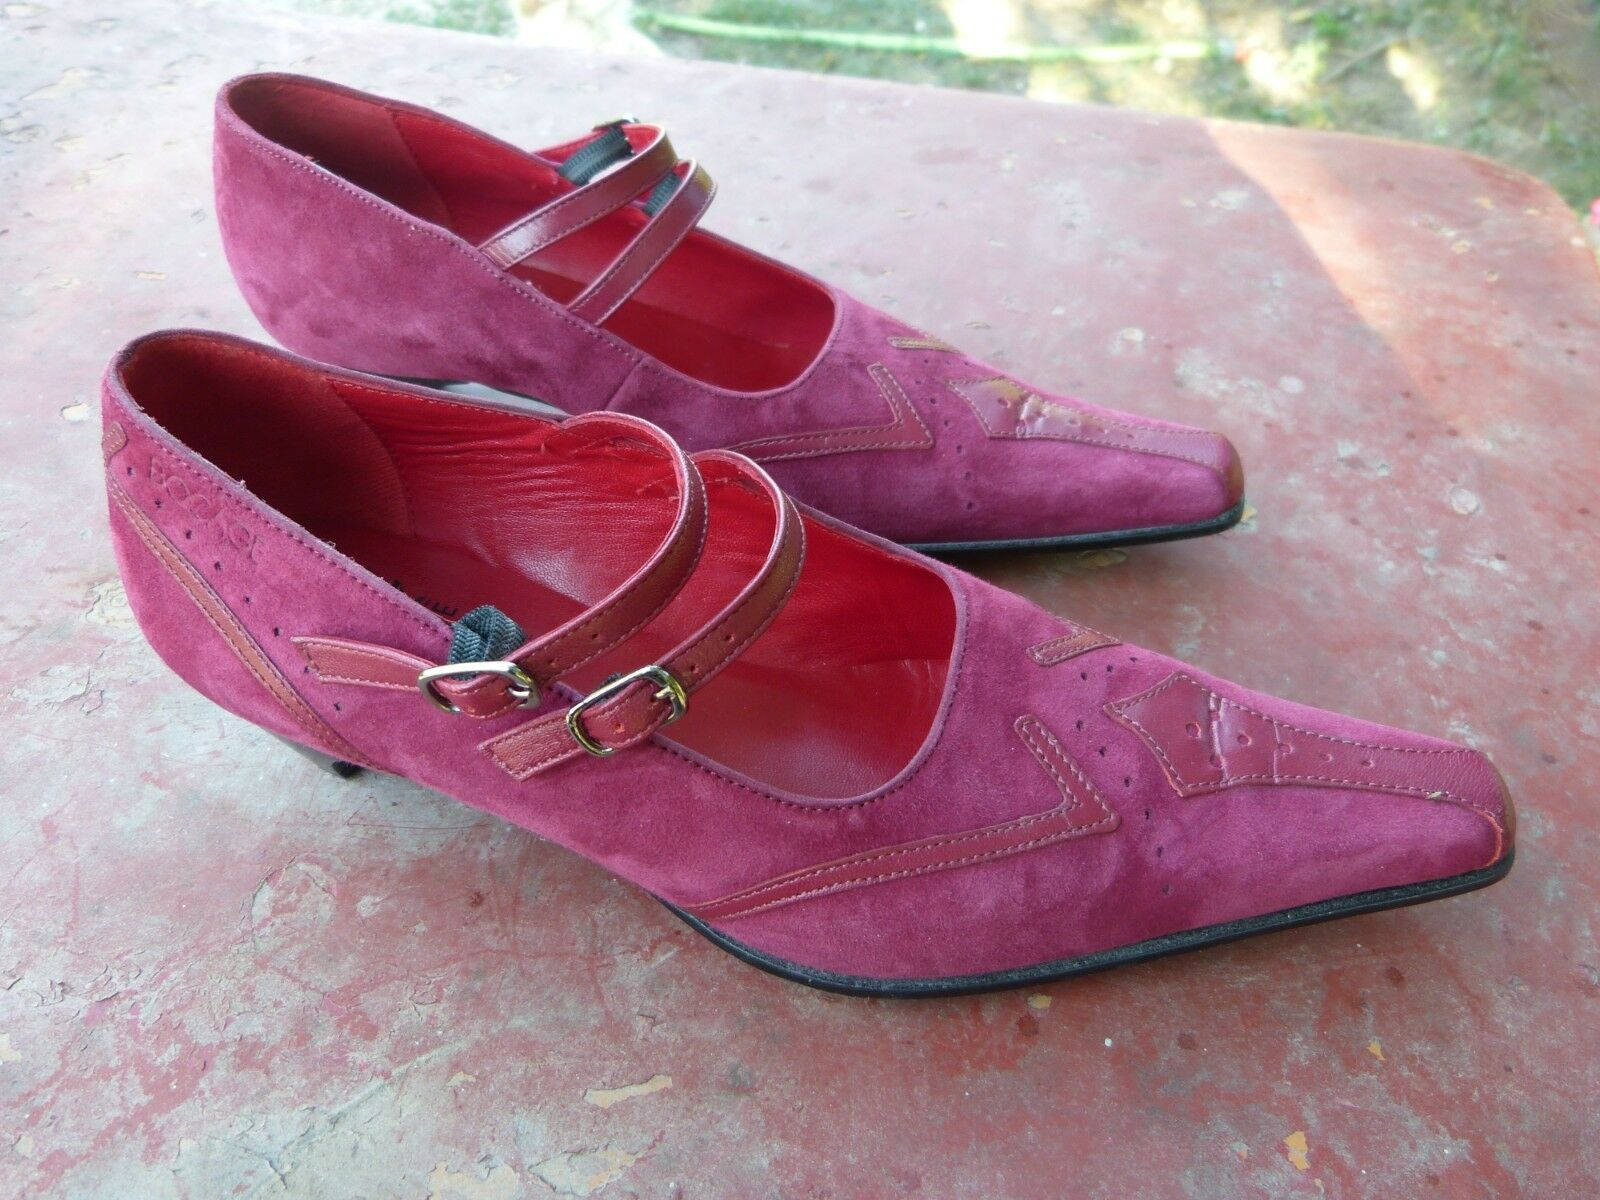 GGGG shoes bocage purple plum size 38 french in excellent condition